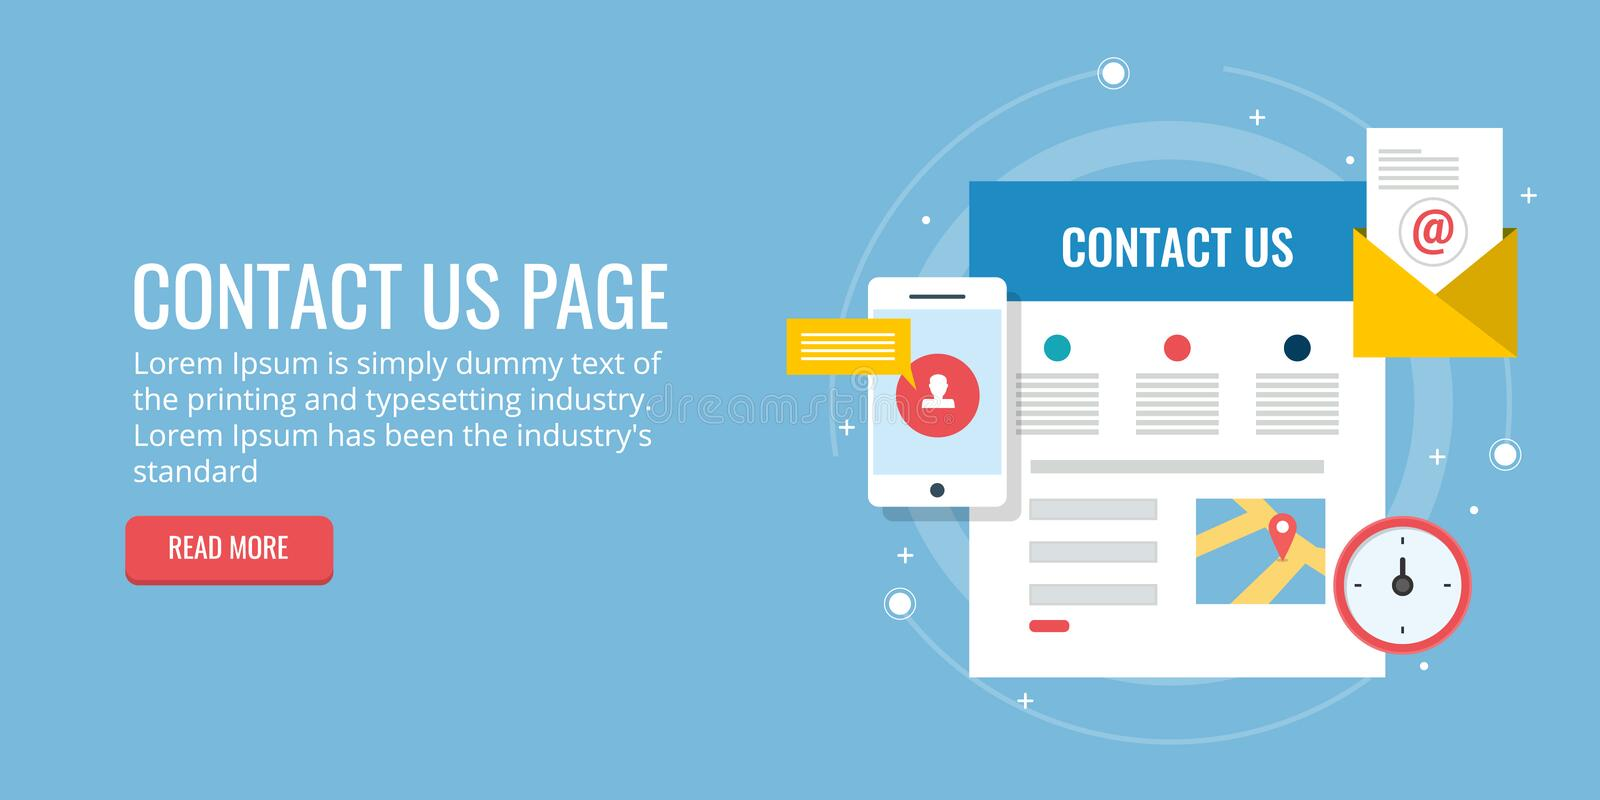 Contact us page - inquiry form - email contact - map concept. Flat design vector banner. Concept of contact page of a website, where people contact through an royalty free illustration